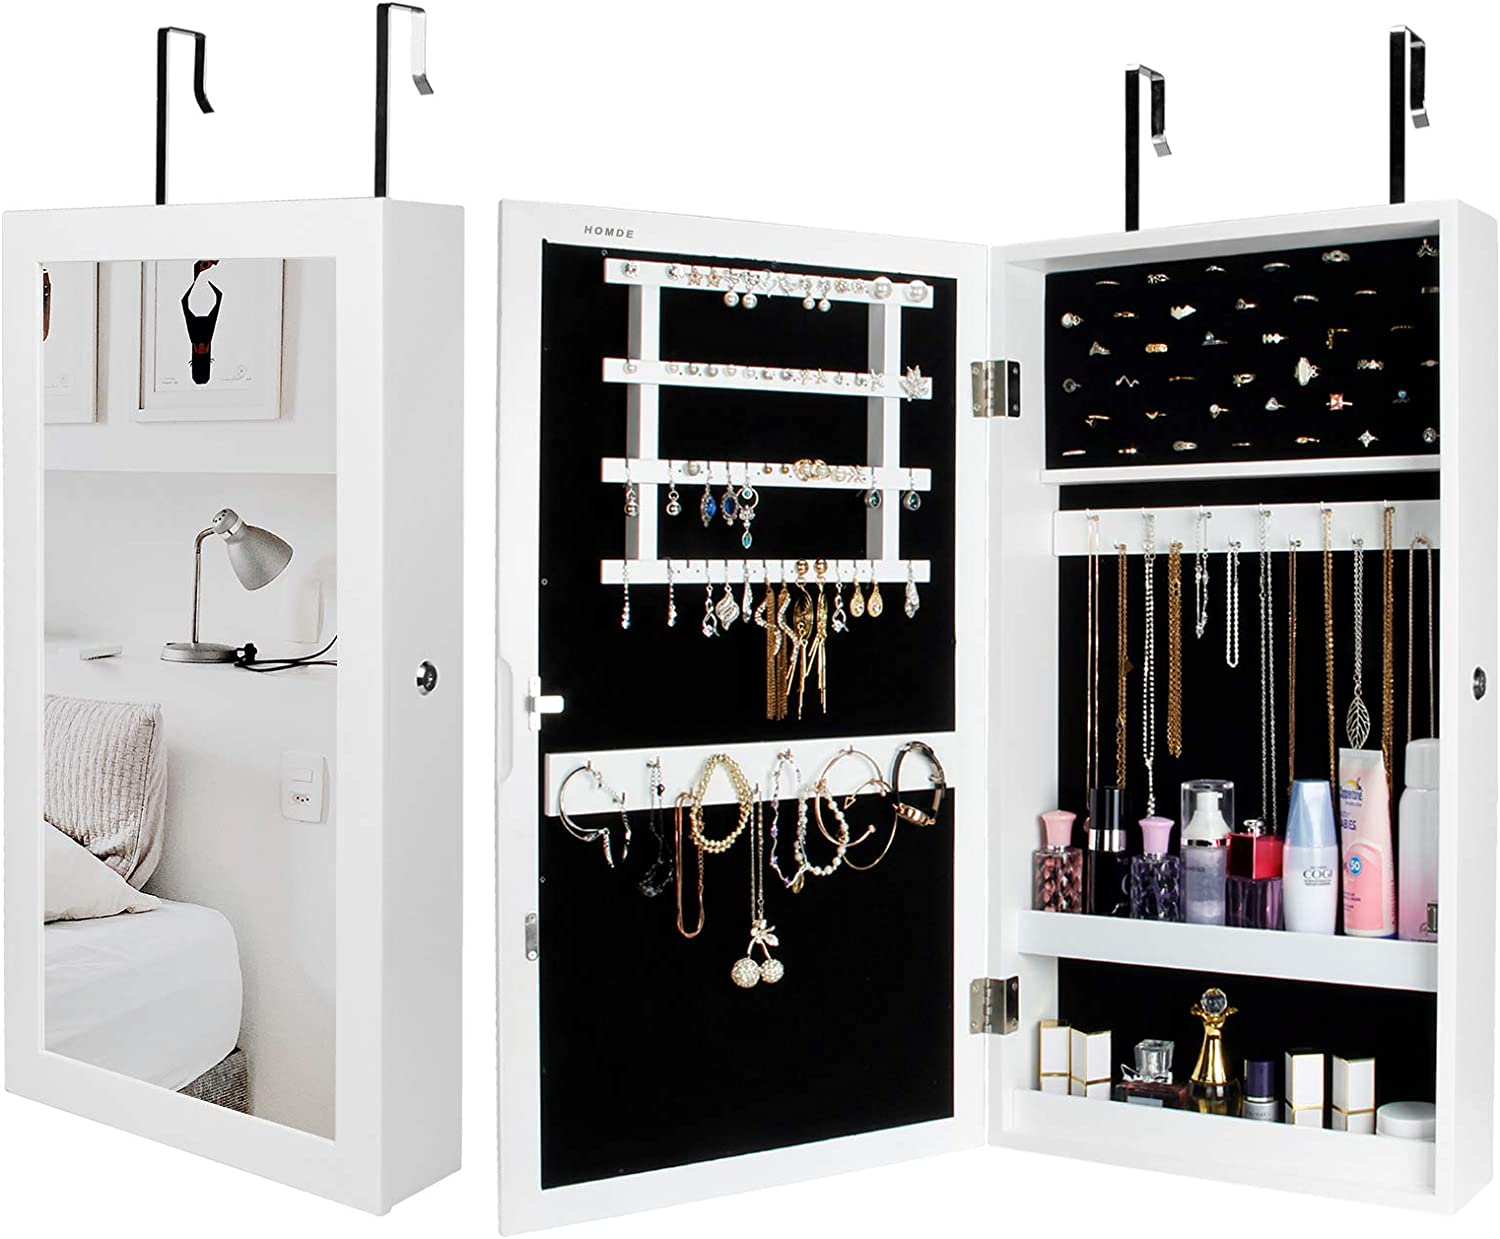 Homde Lockable Jewelry Cabinet Armoire Wall-Mounted with Mirror Jewelry Storage Organizer (White)